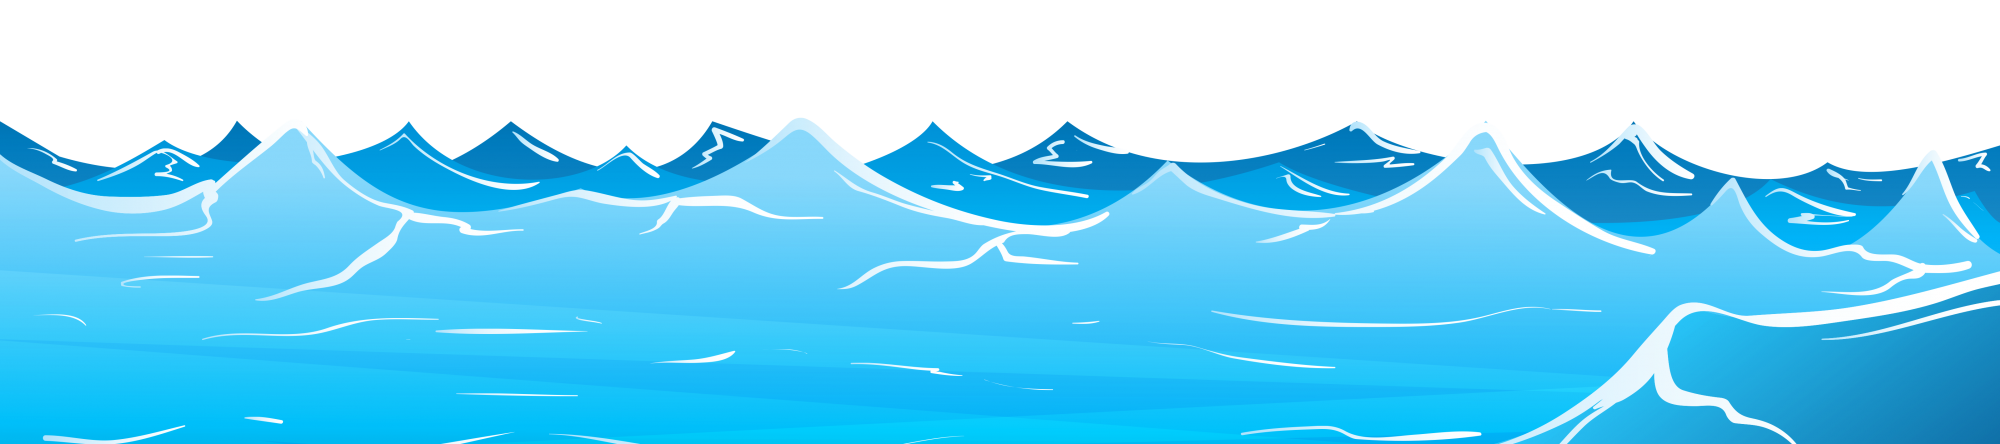 water clipart png